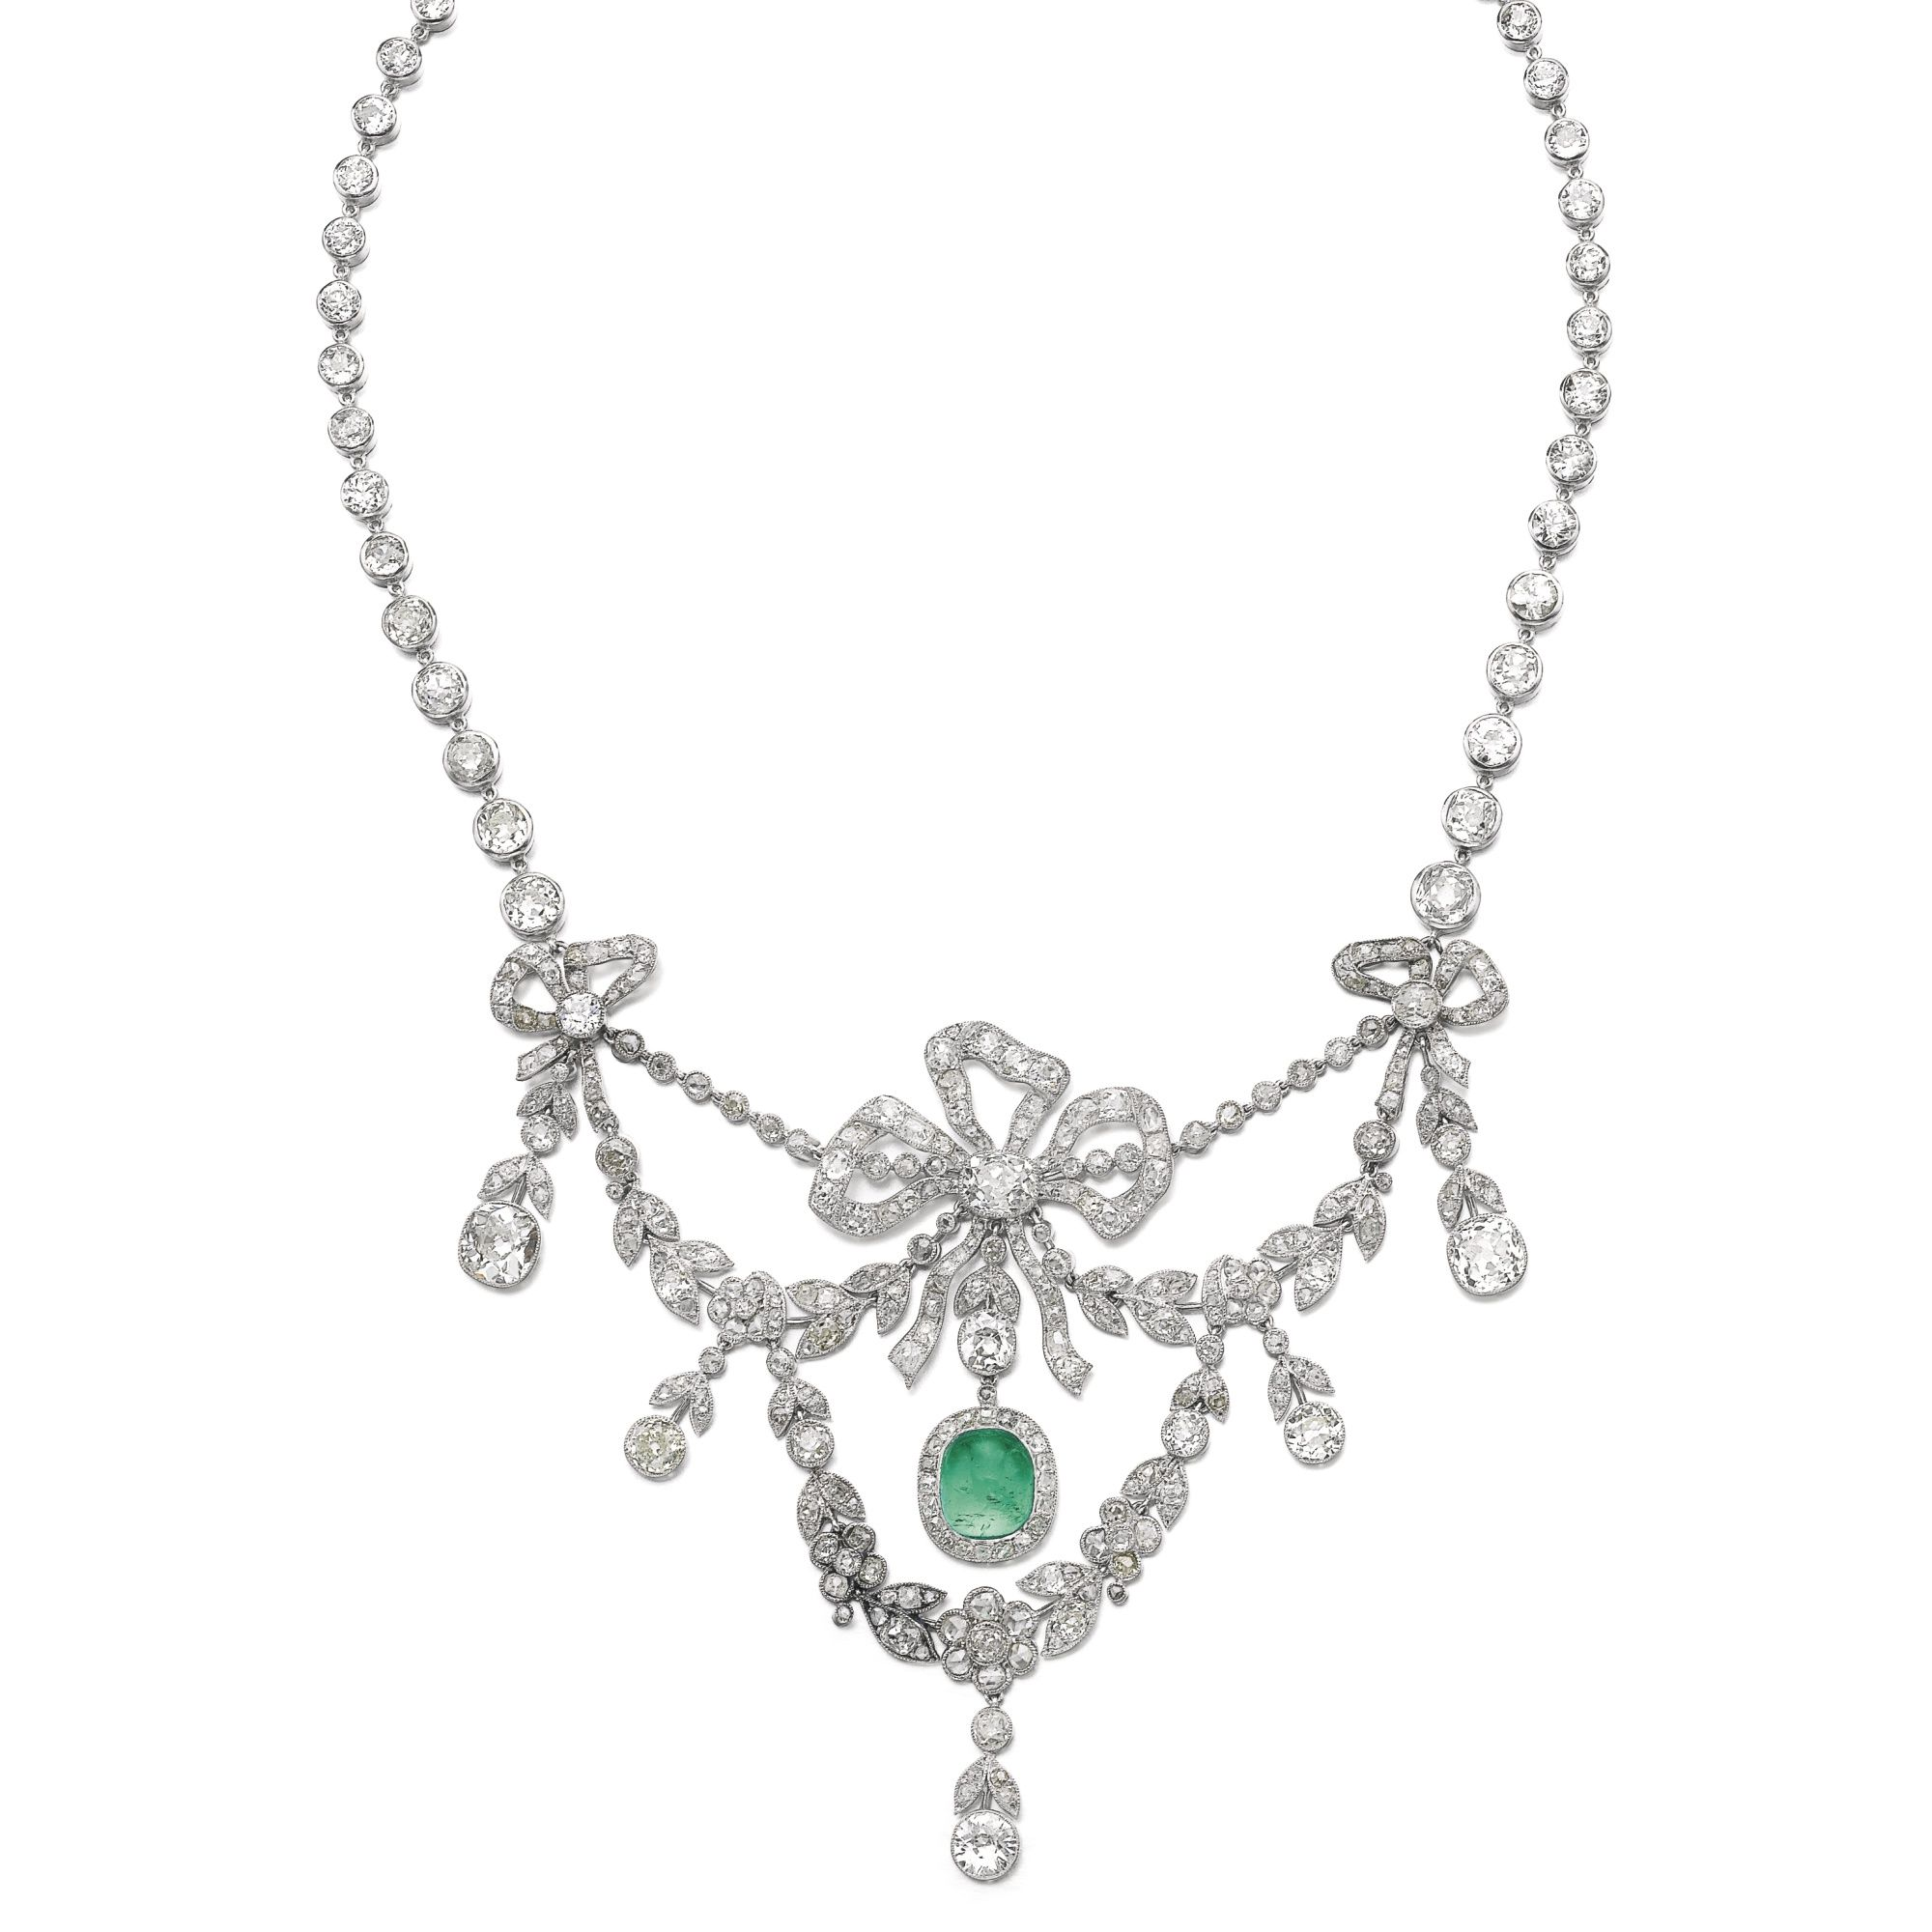 Emerald and diamond necklace circa and later the front of